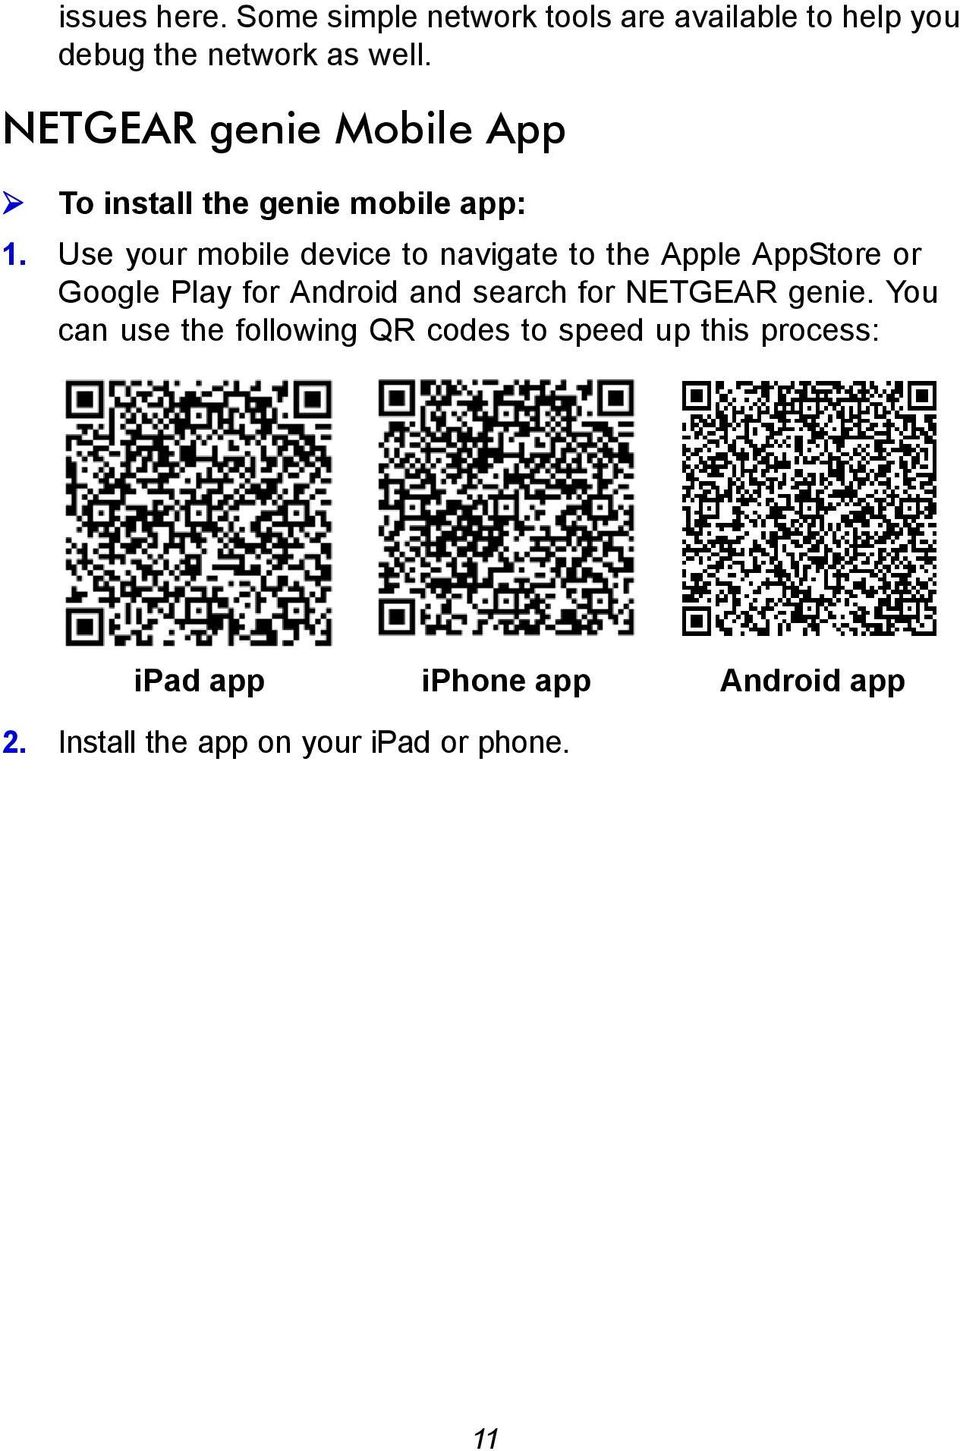 Use your mobile device to navigate to the Apple AppStore or Google Play for Android and search for